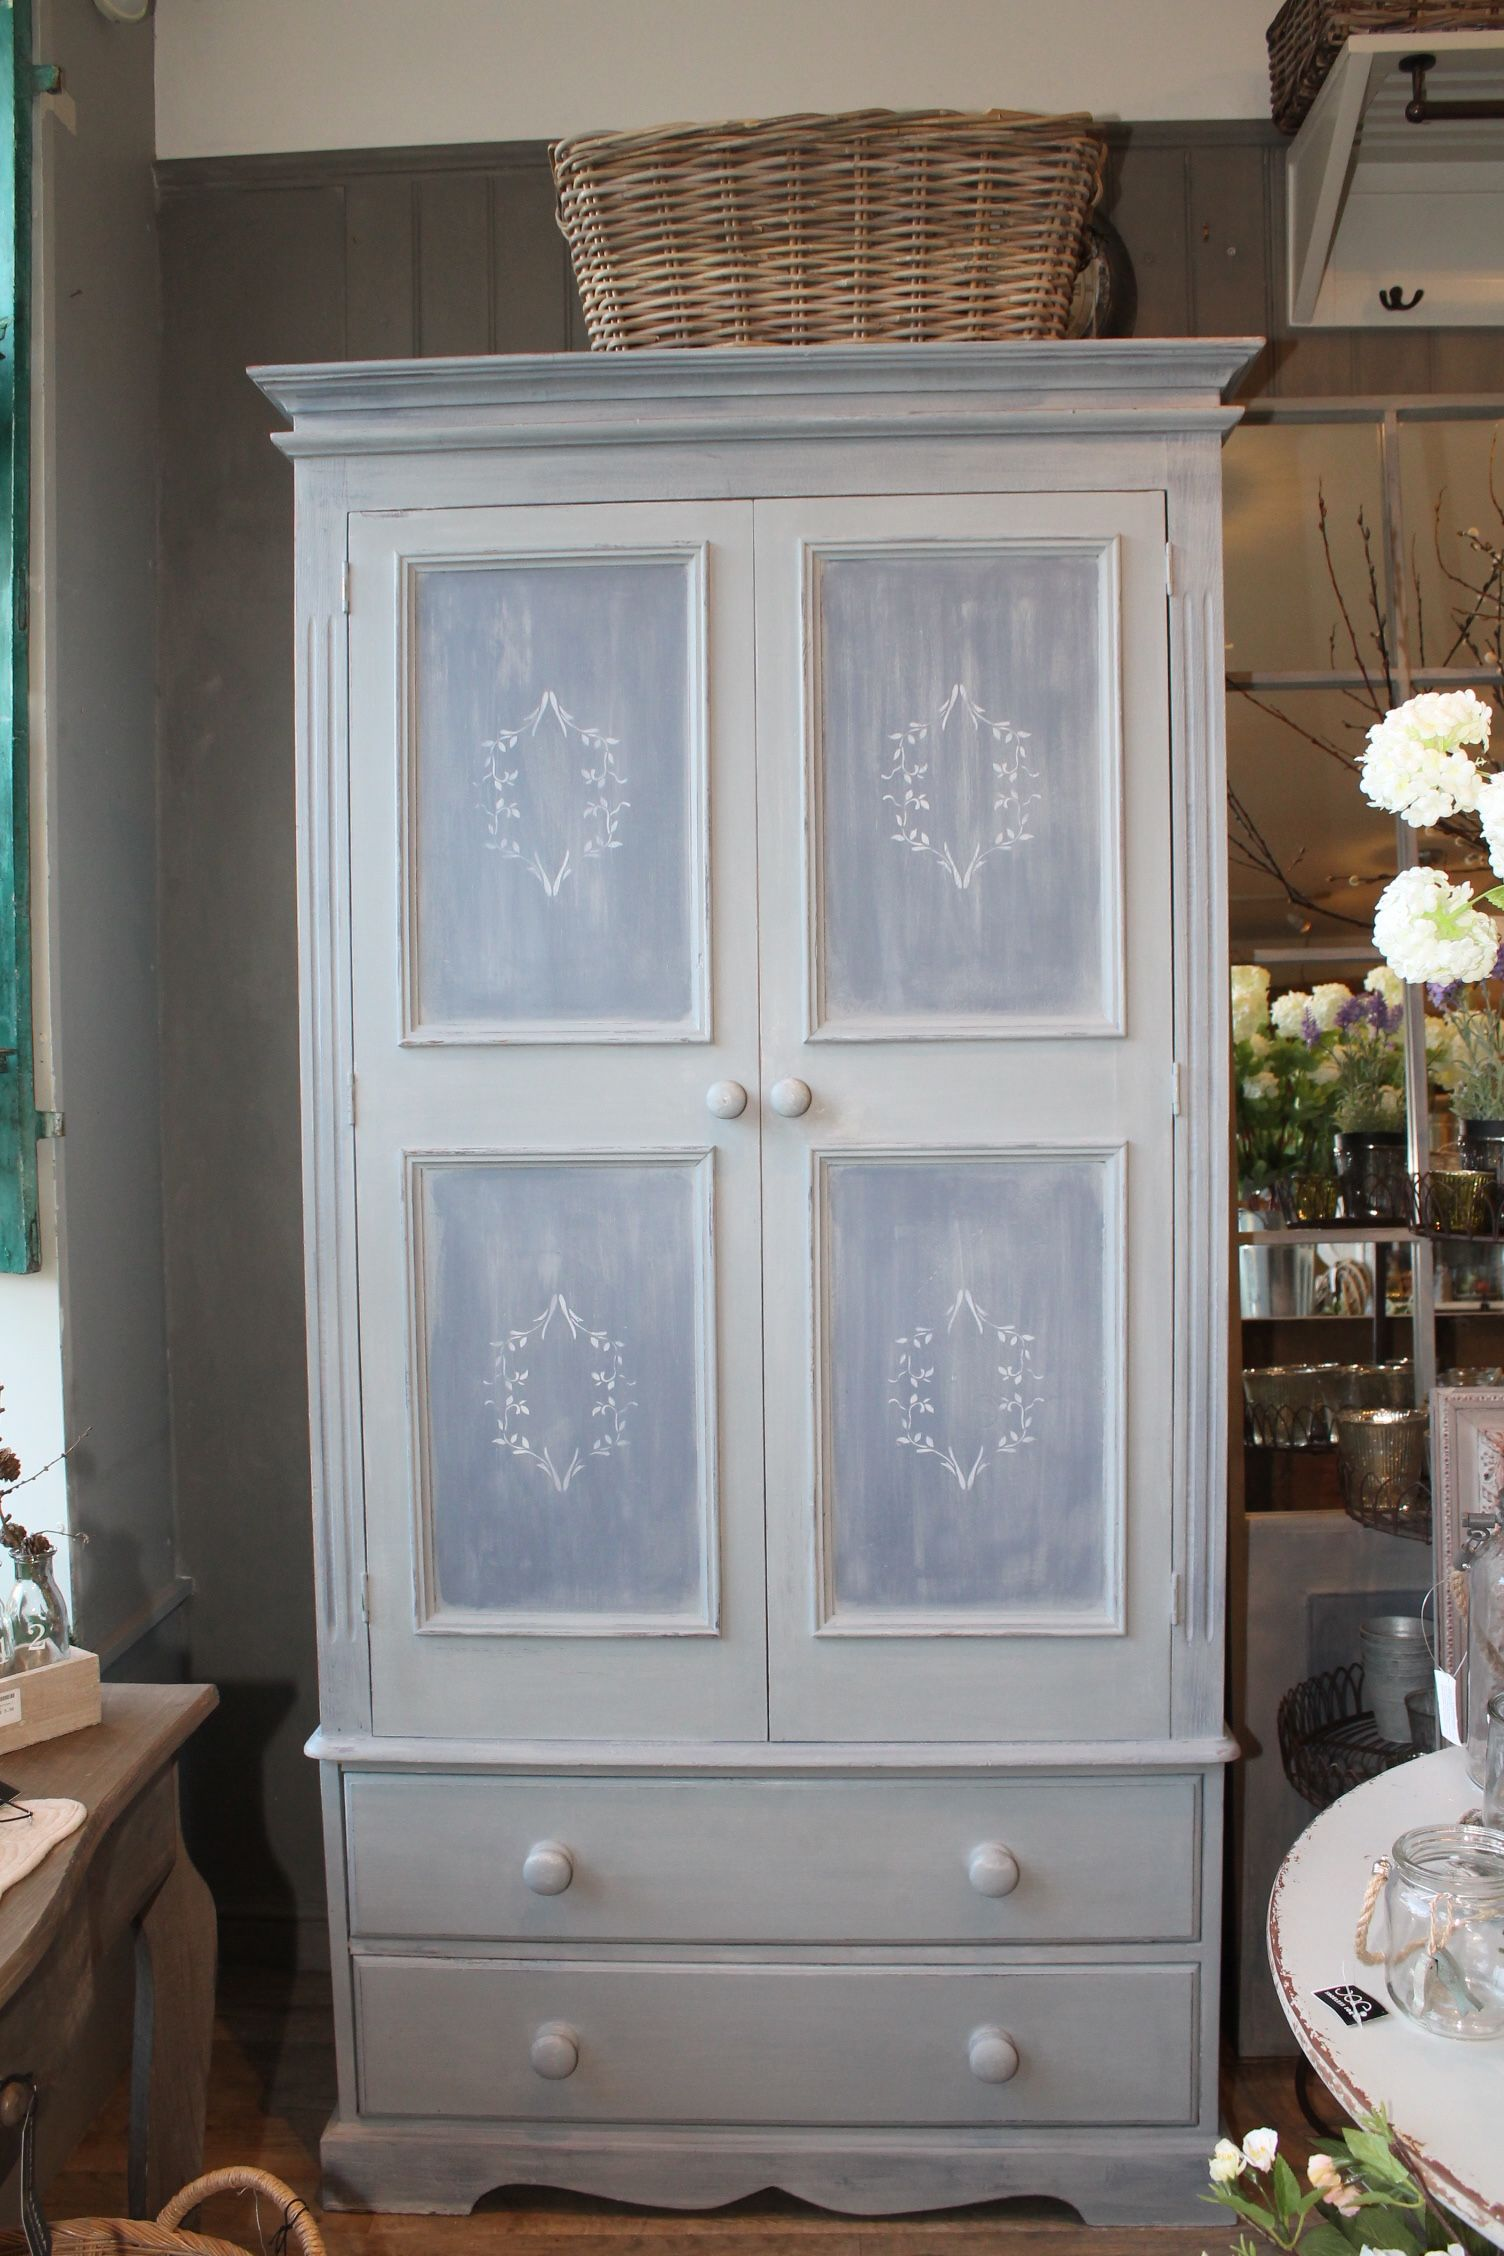 Swedish Style Wardrobe Painted In Mix Of Louis Blue And